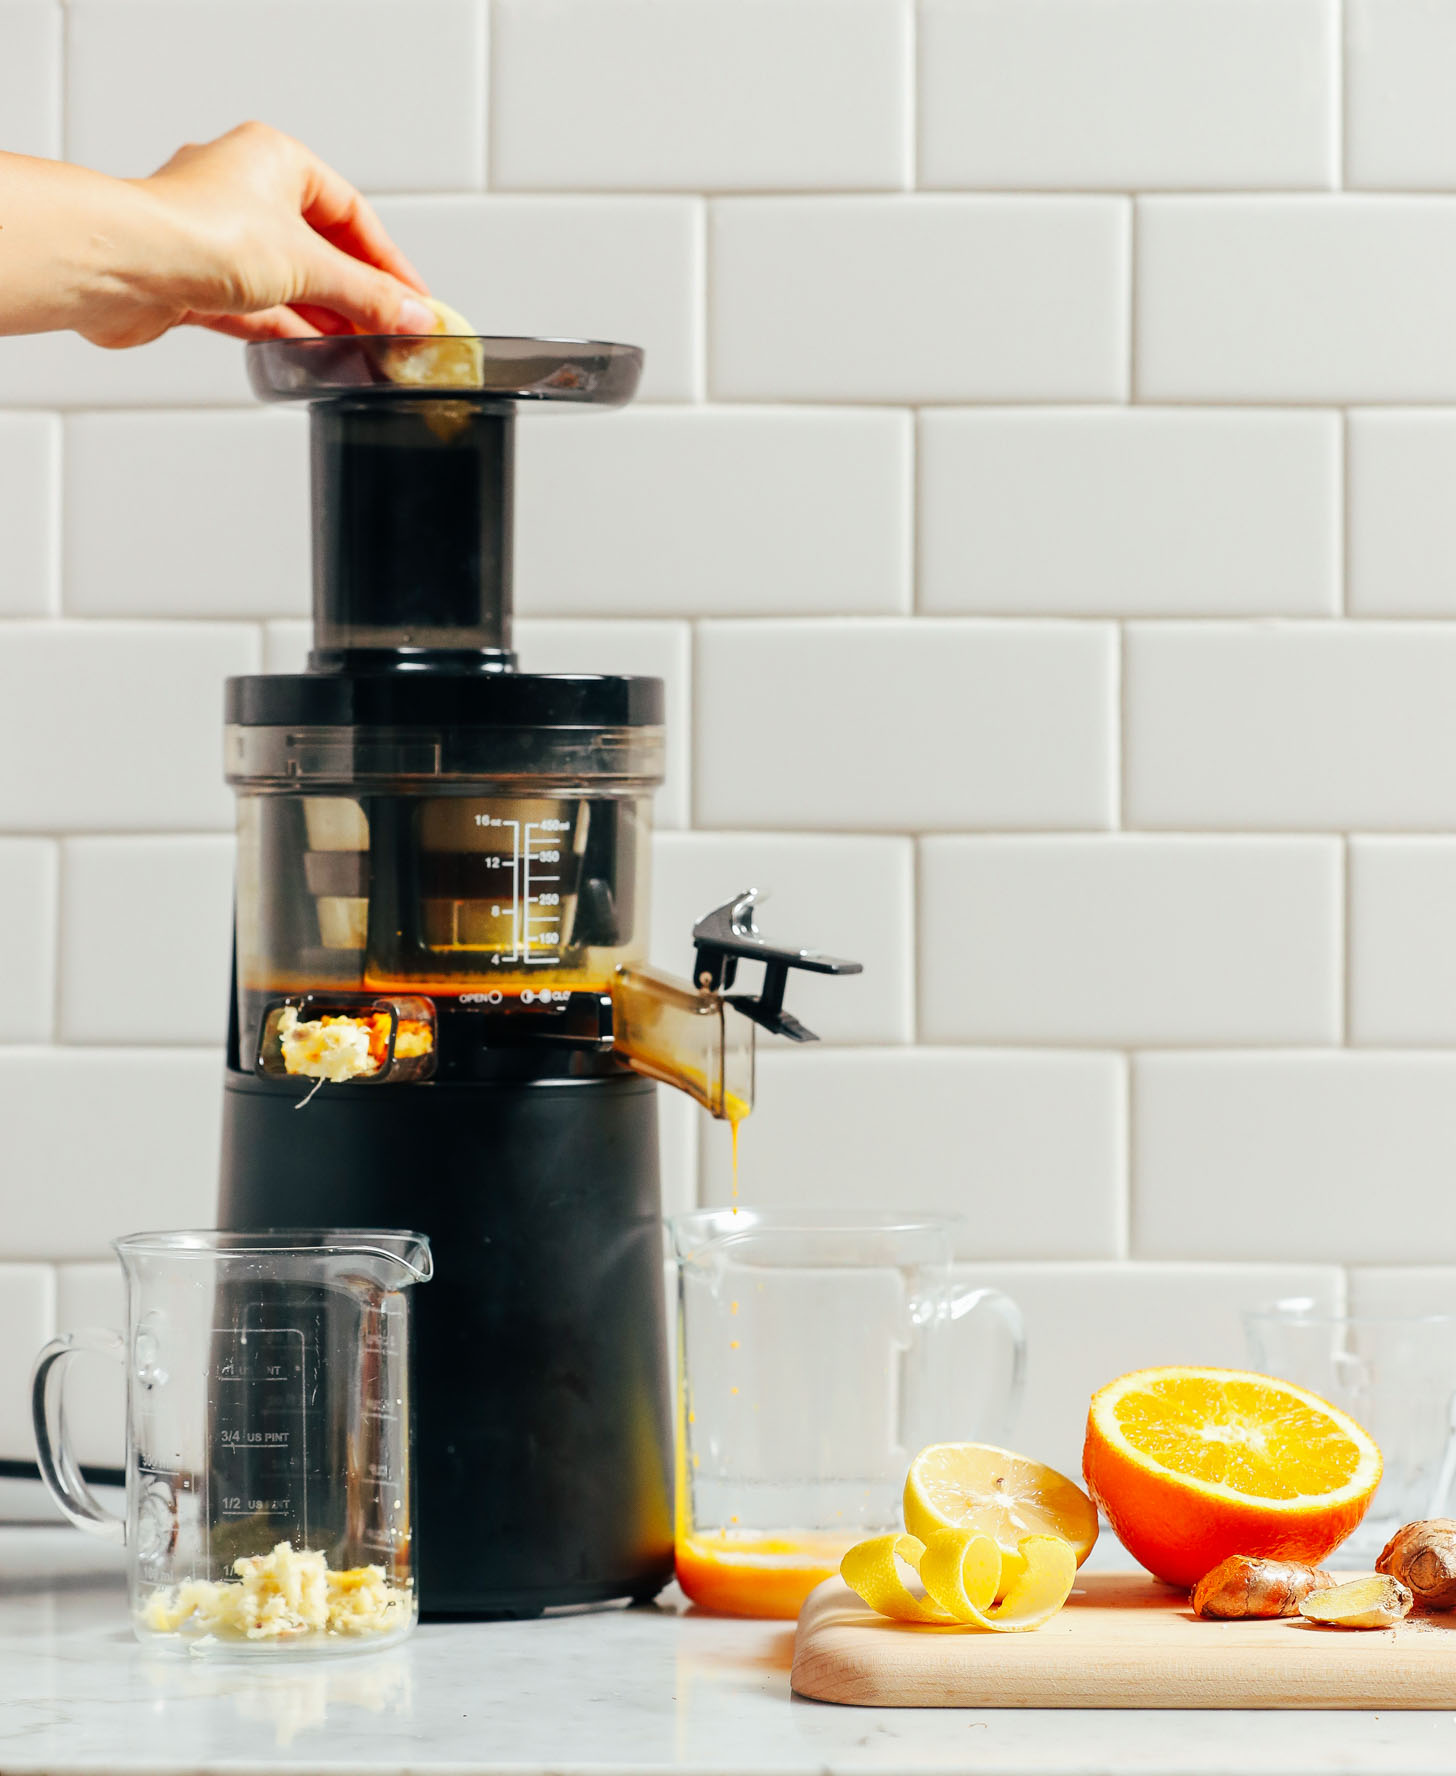 Showing how to use a juicer to make Turmeric Wellness Shots